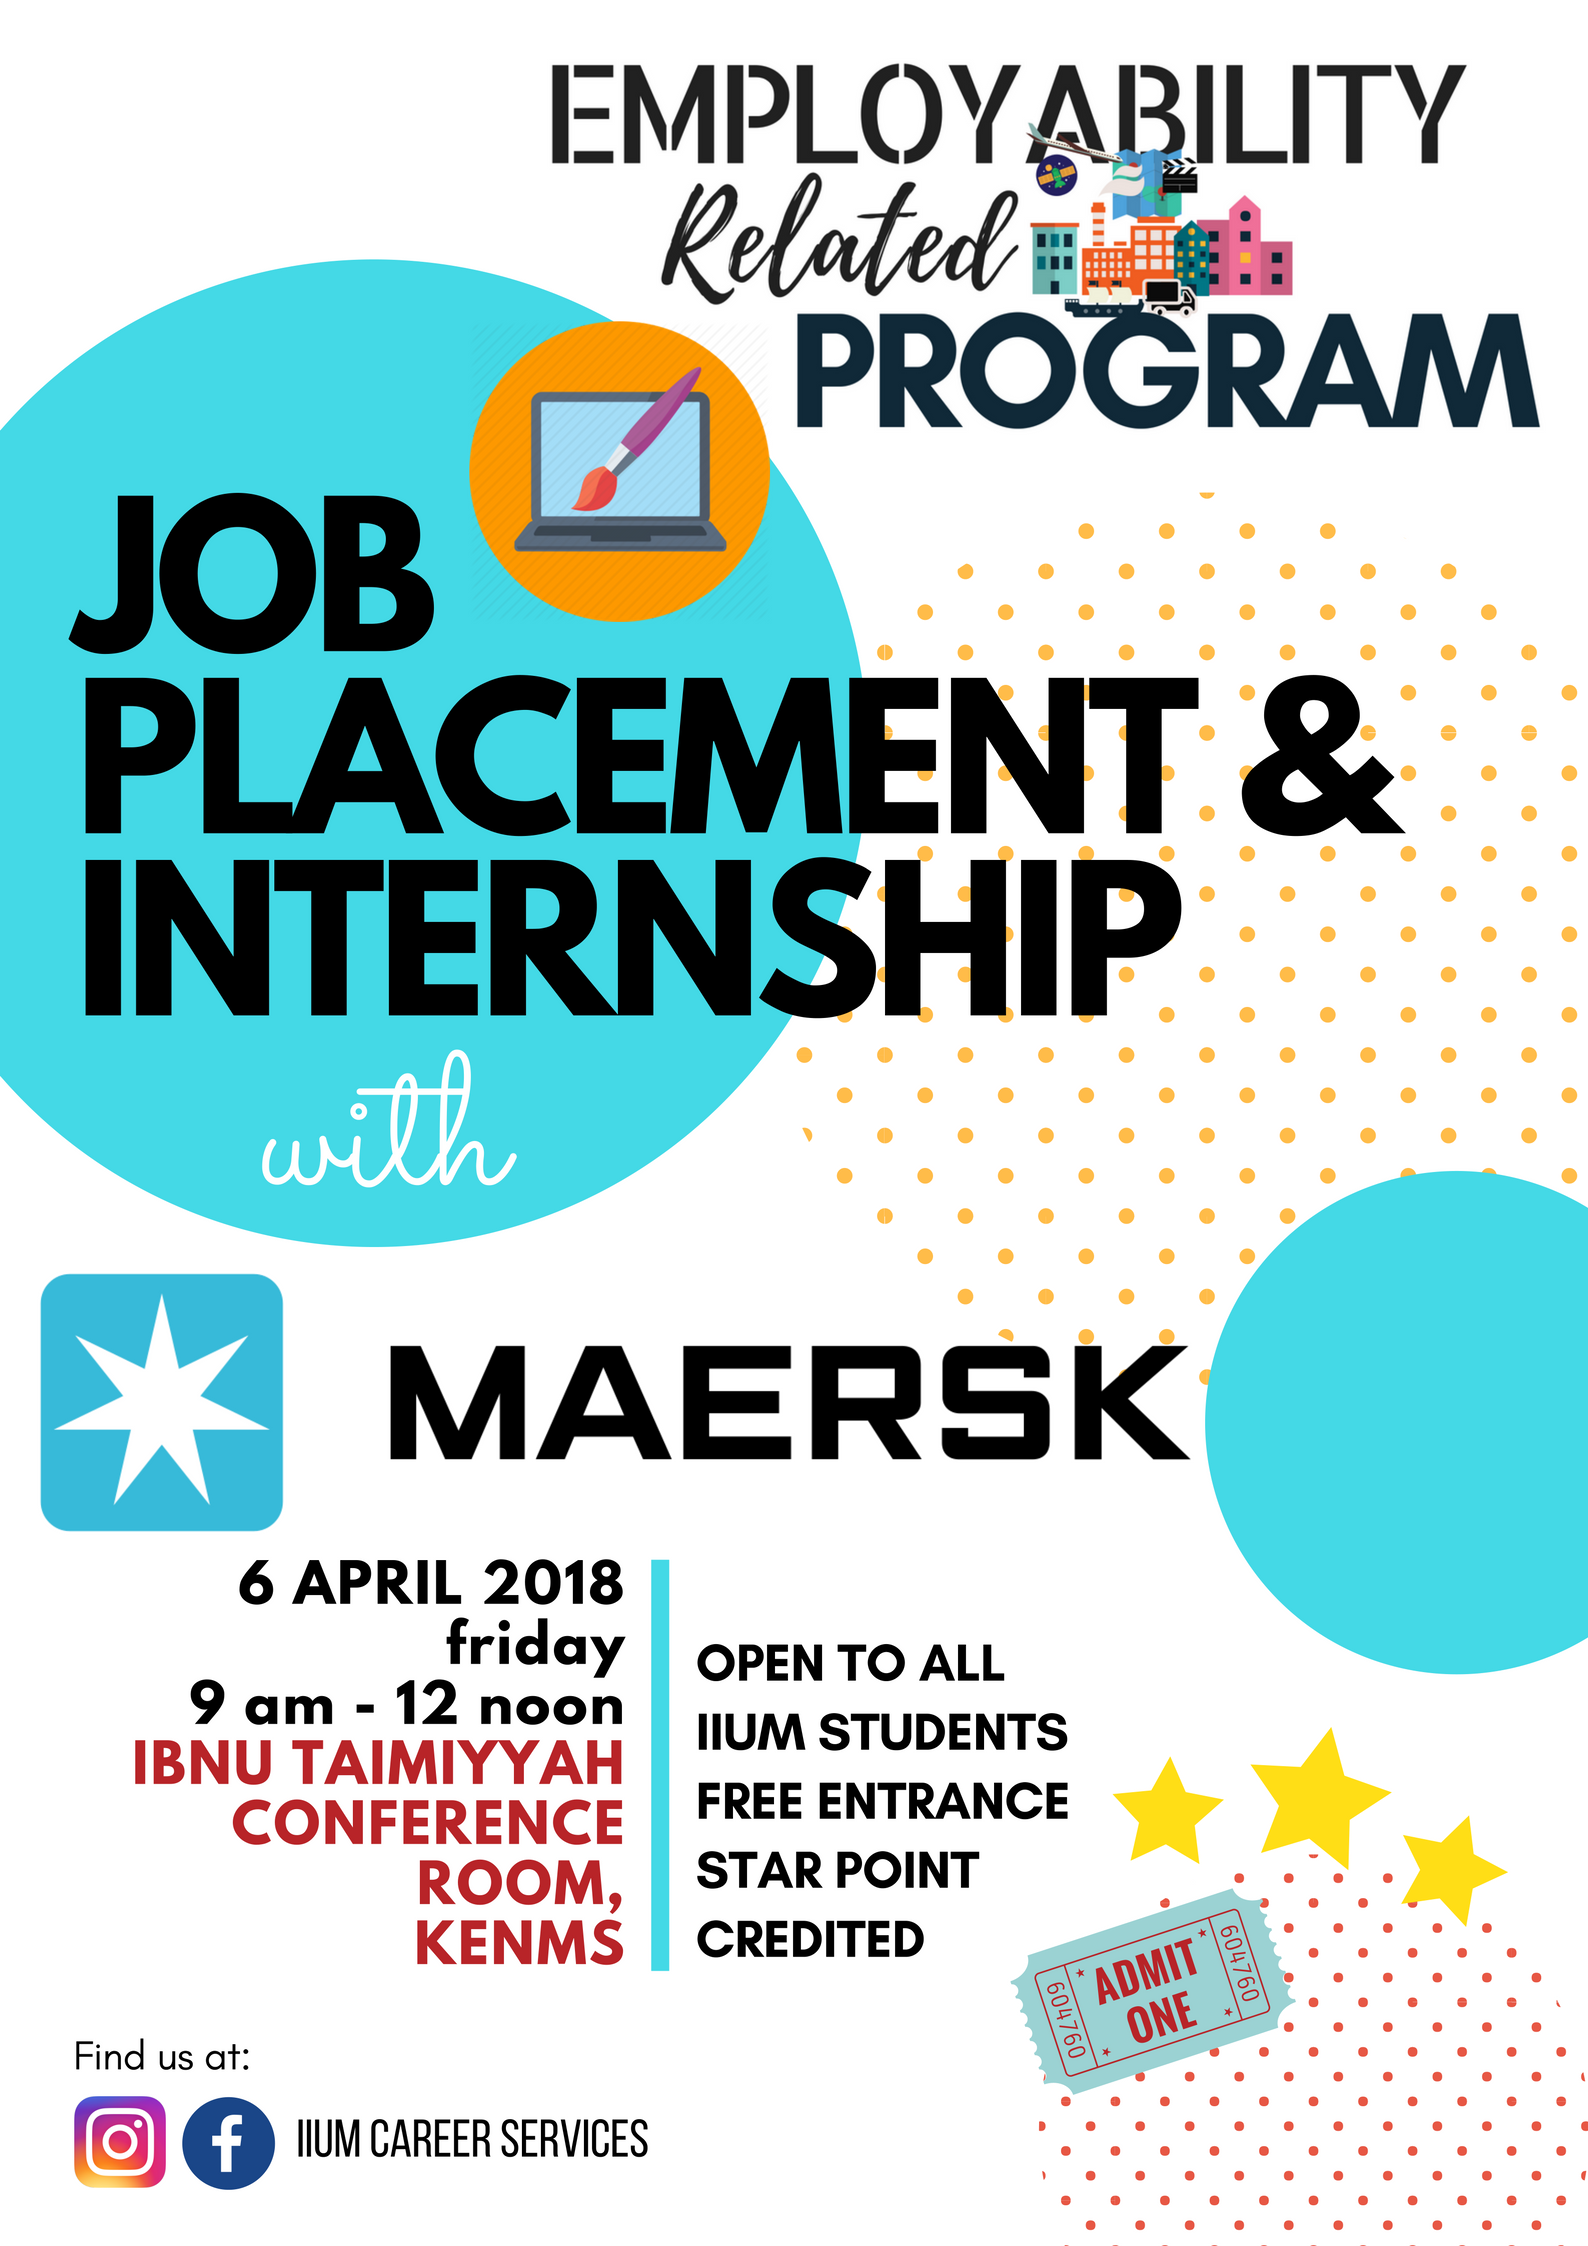 CAREER TALK - JOB PLACEMENT AND INTERNSHIP WITH MAERSK